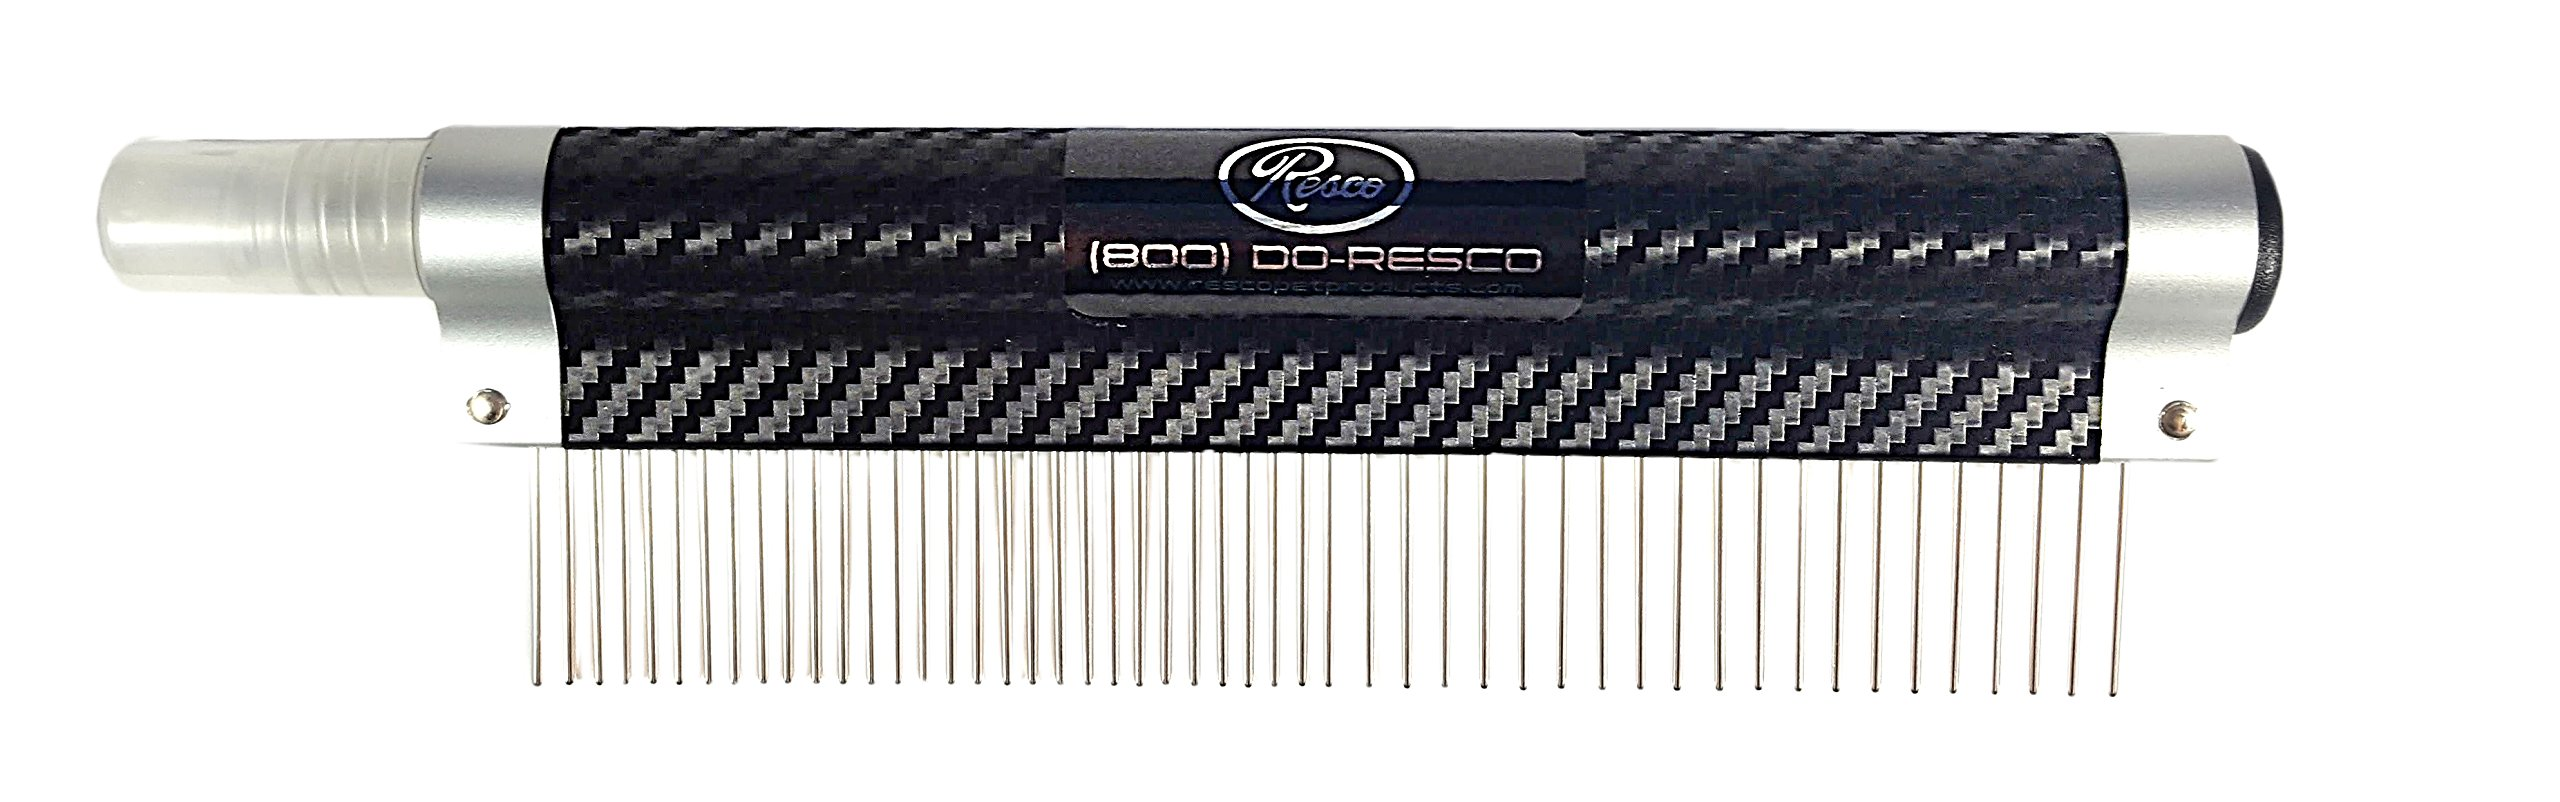 Resco USA-MADE Spritzer Comb for Pets, 1'' Combination, Carbon Fiber, Includes Detangler and Finishing Spray